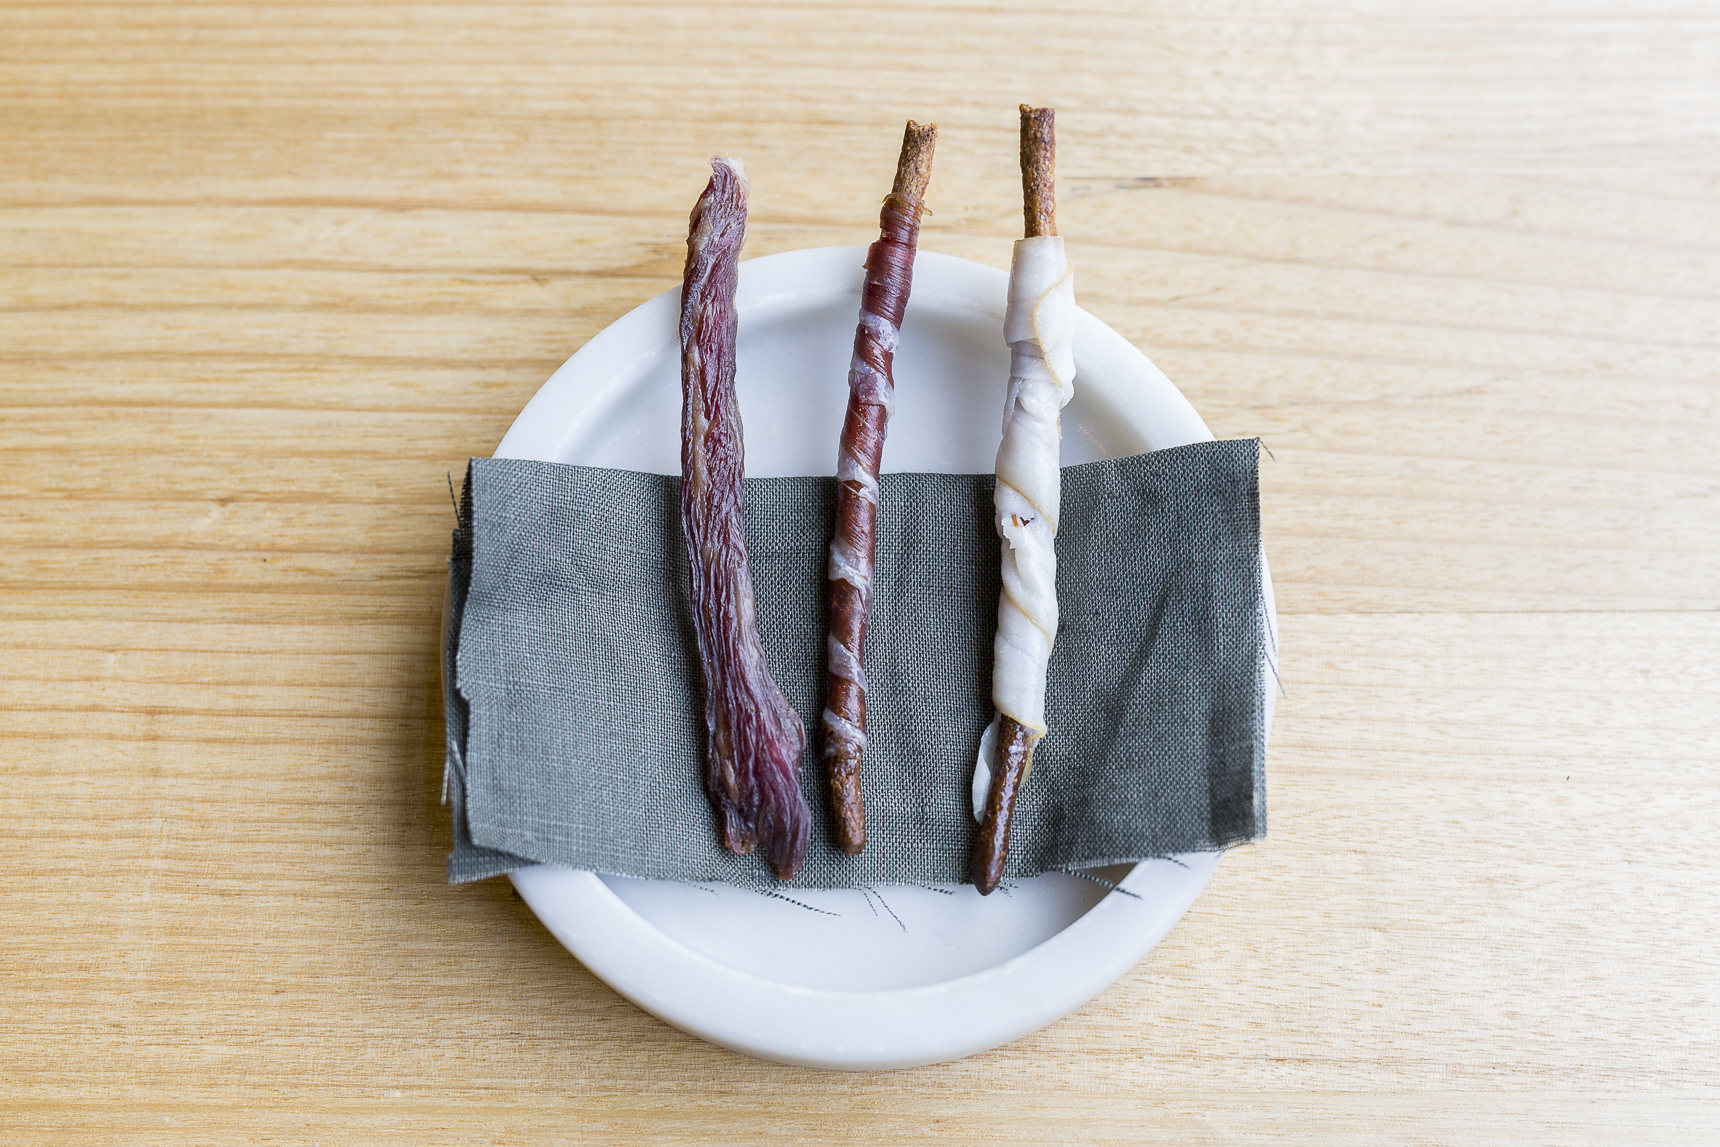 Cured meats and grissini